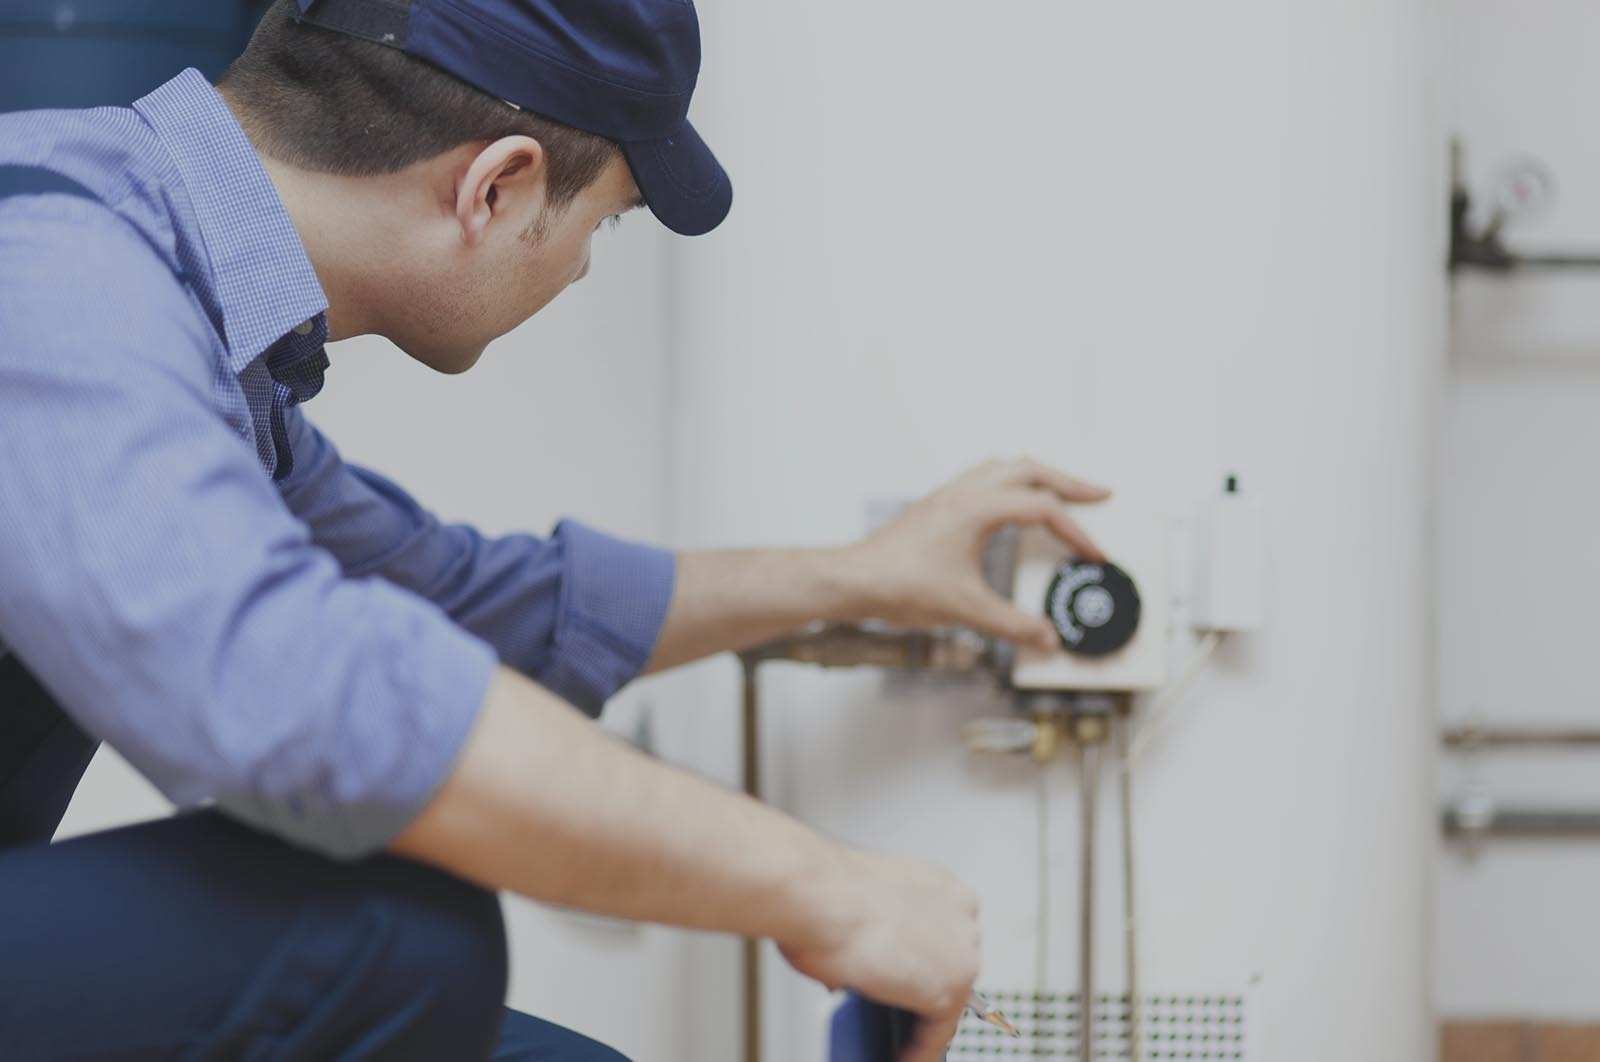 Trained plumber fixing water heater and pumps